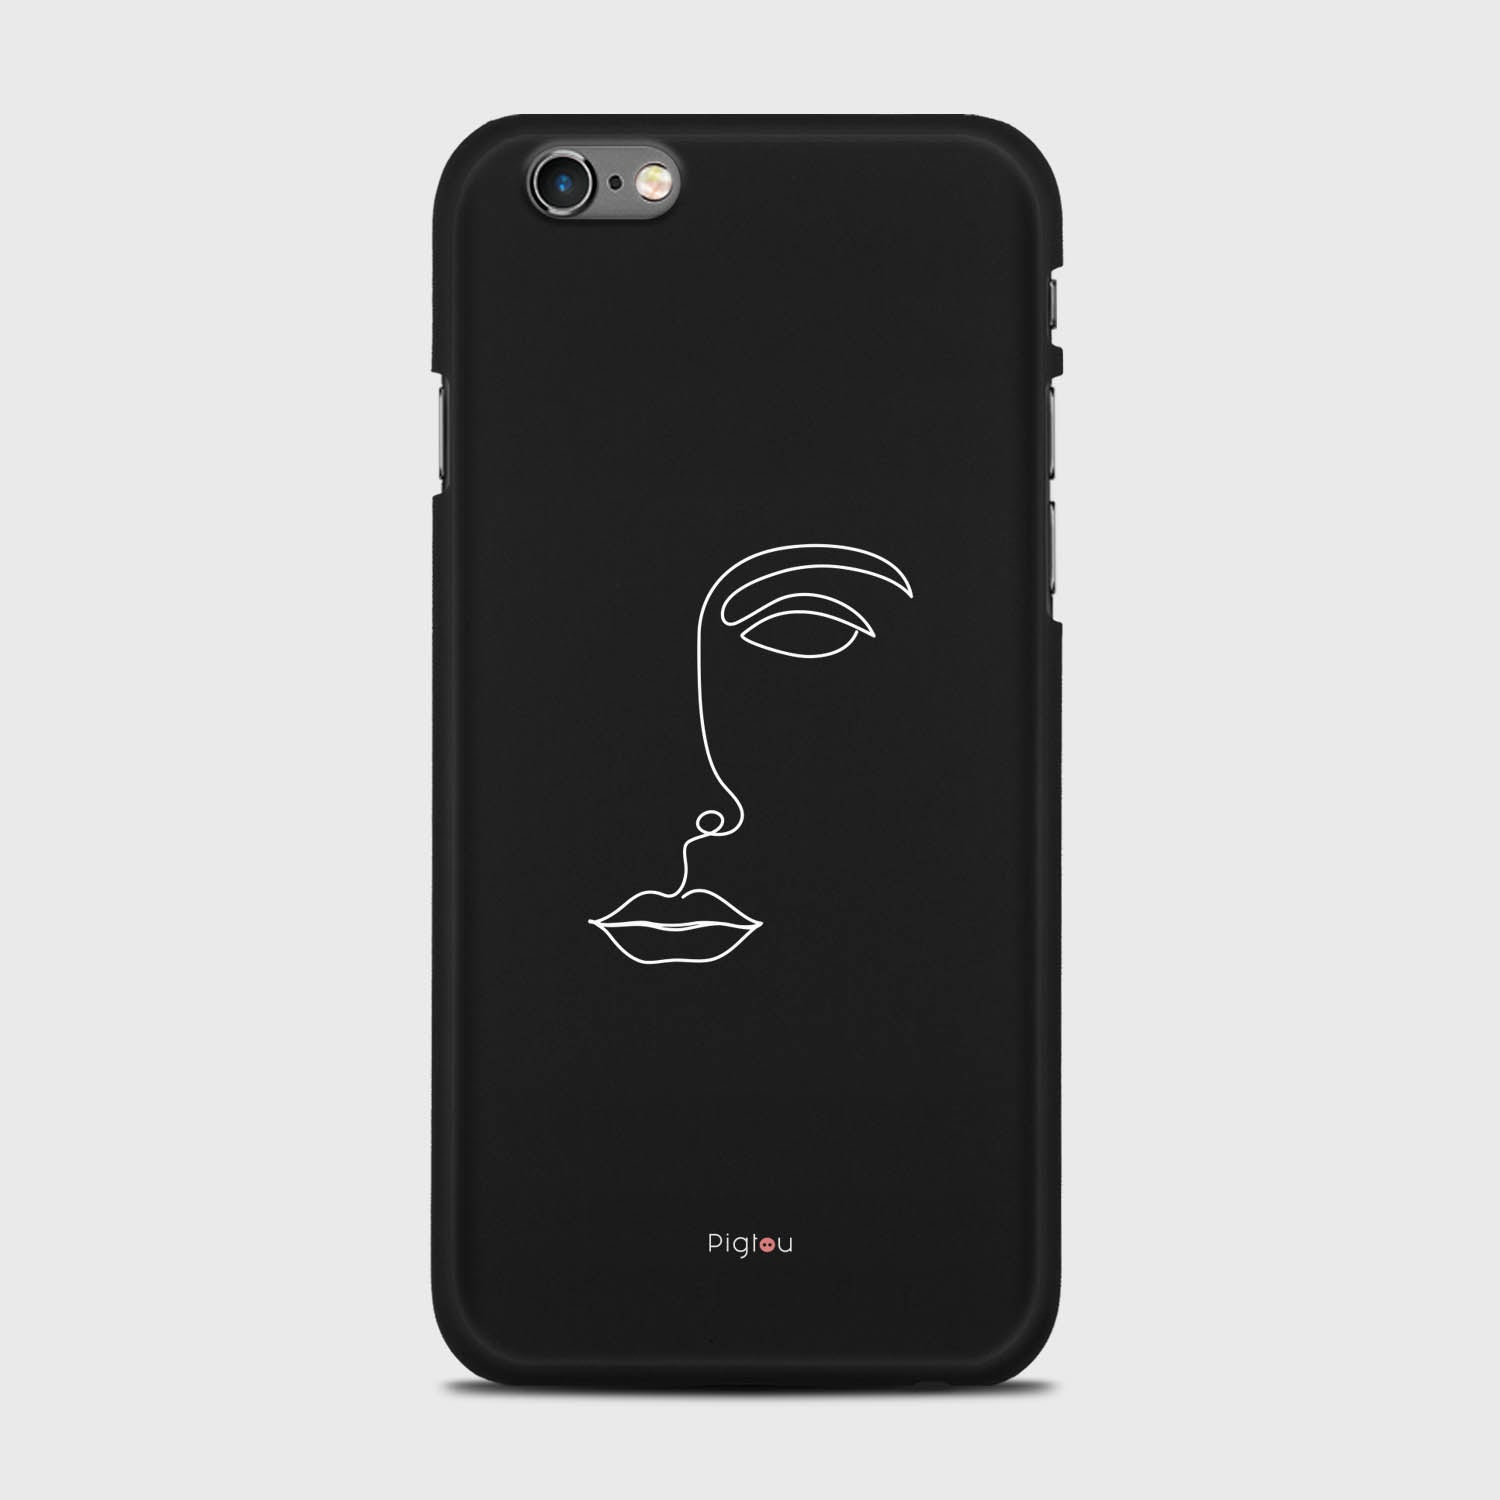 SILHOUETTE FACE iPhone 6 cases | Pigtou